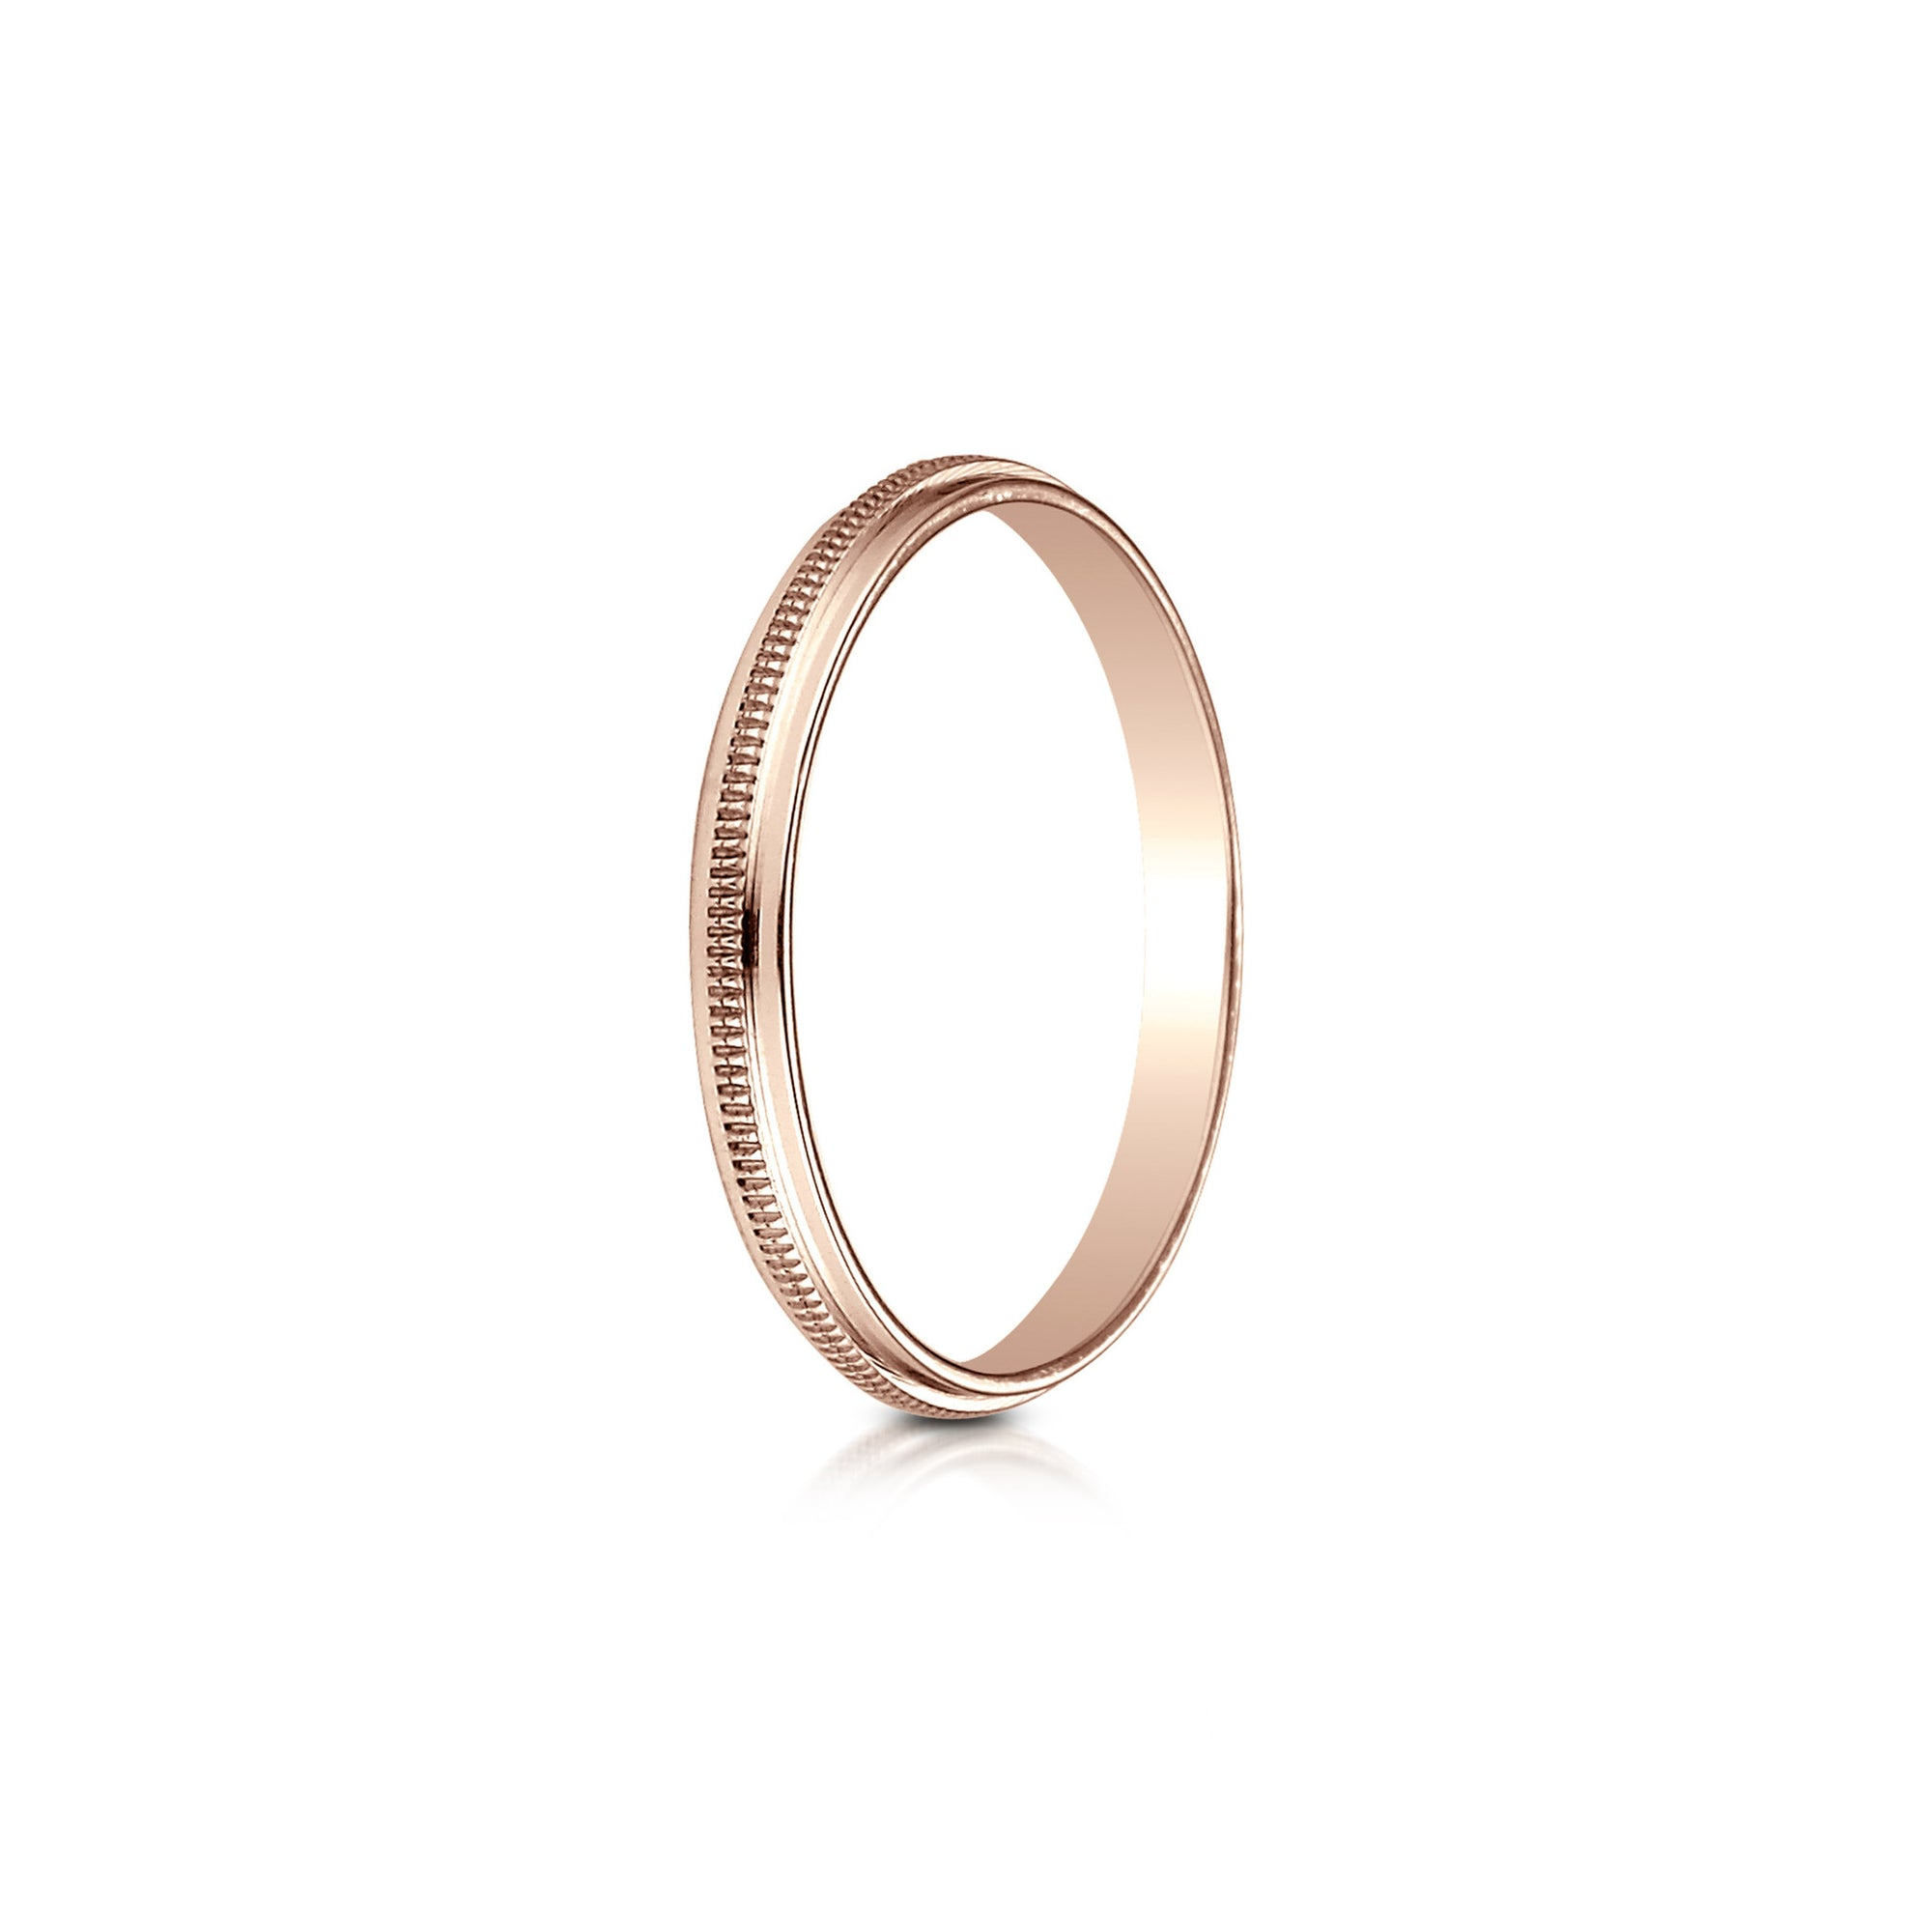 ca ascot diamond rose gold band ring links hires horseshoe ladies rings vermeil of london essentials bands wedding en